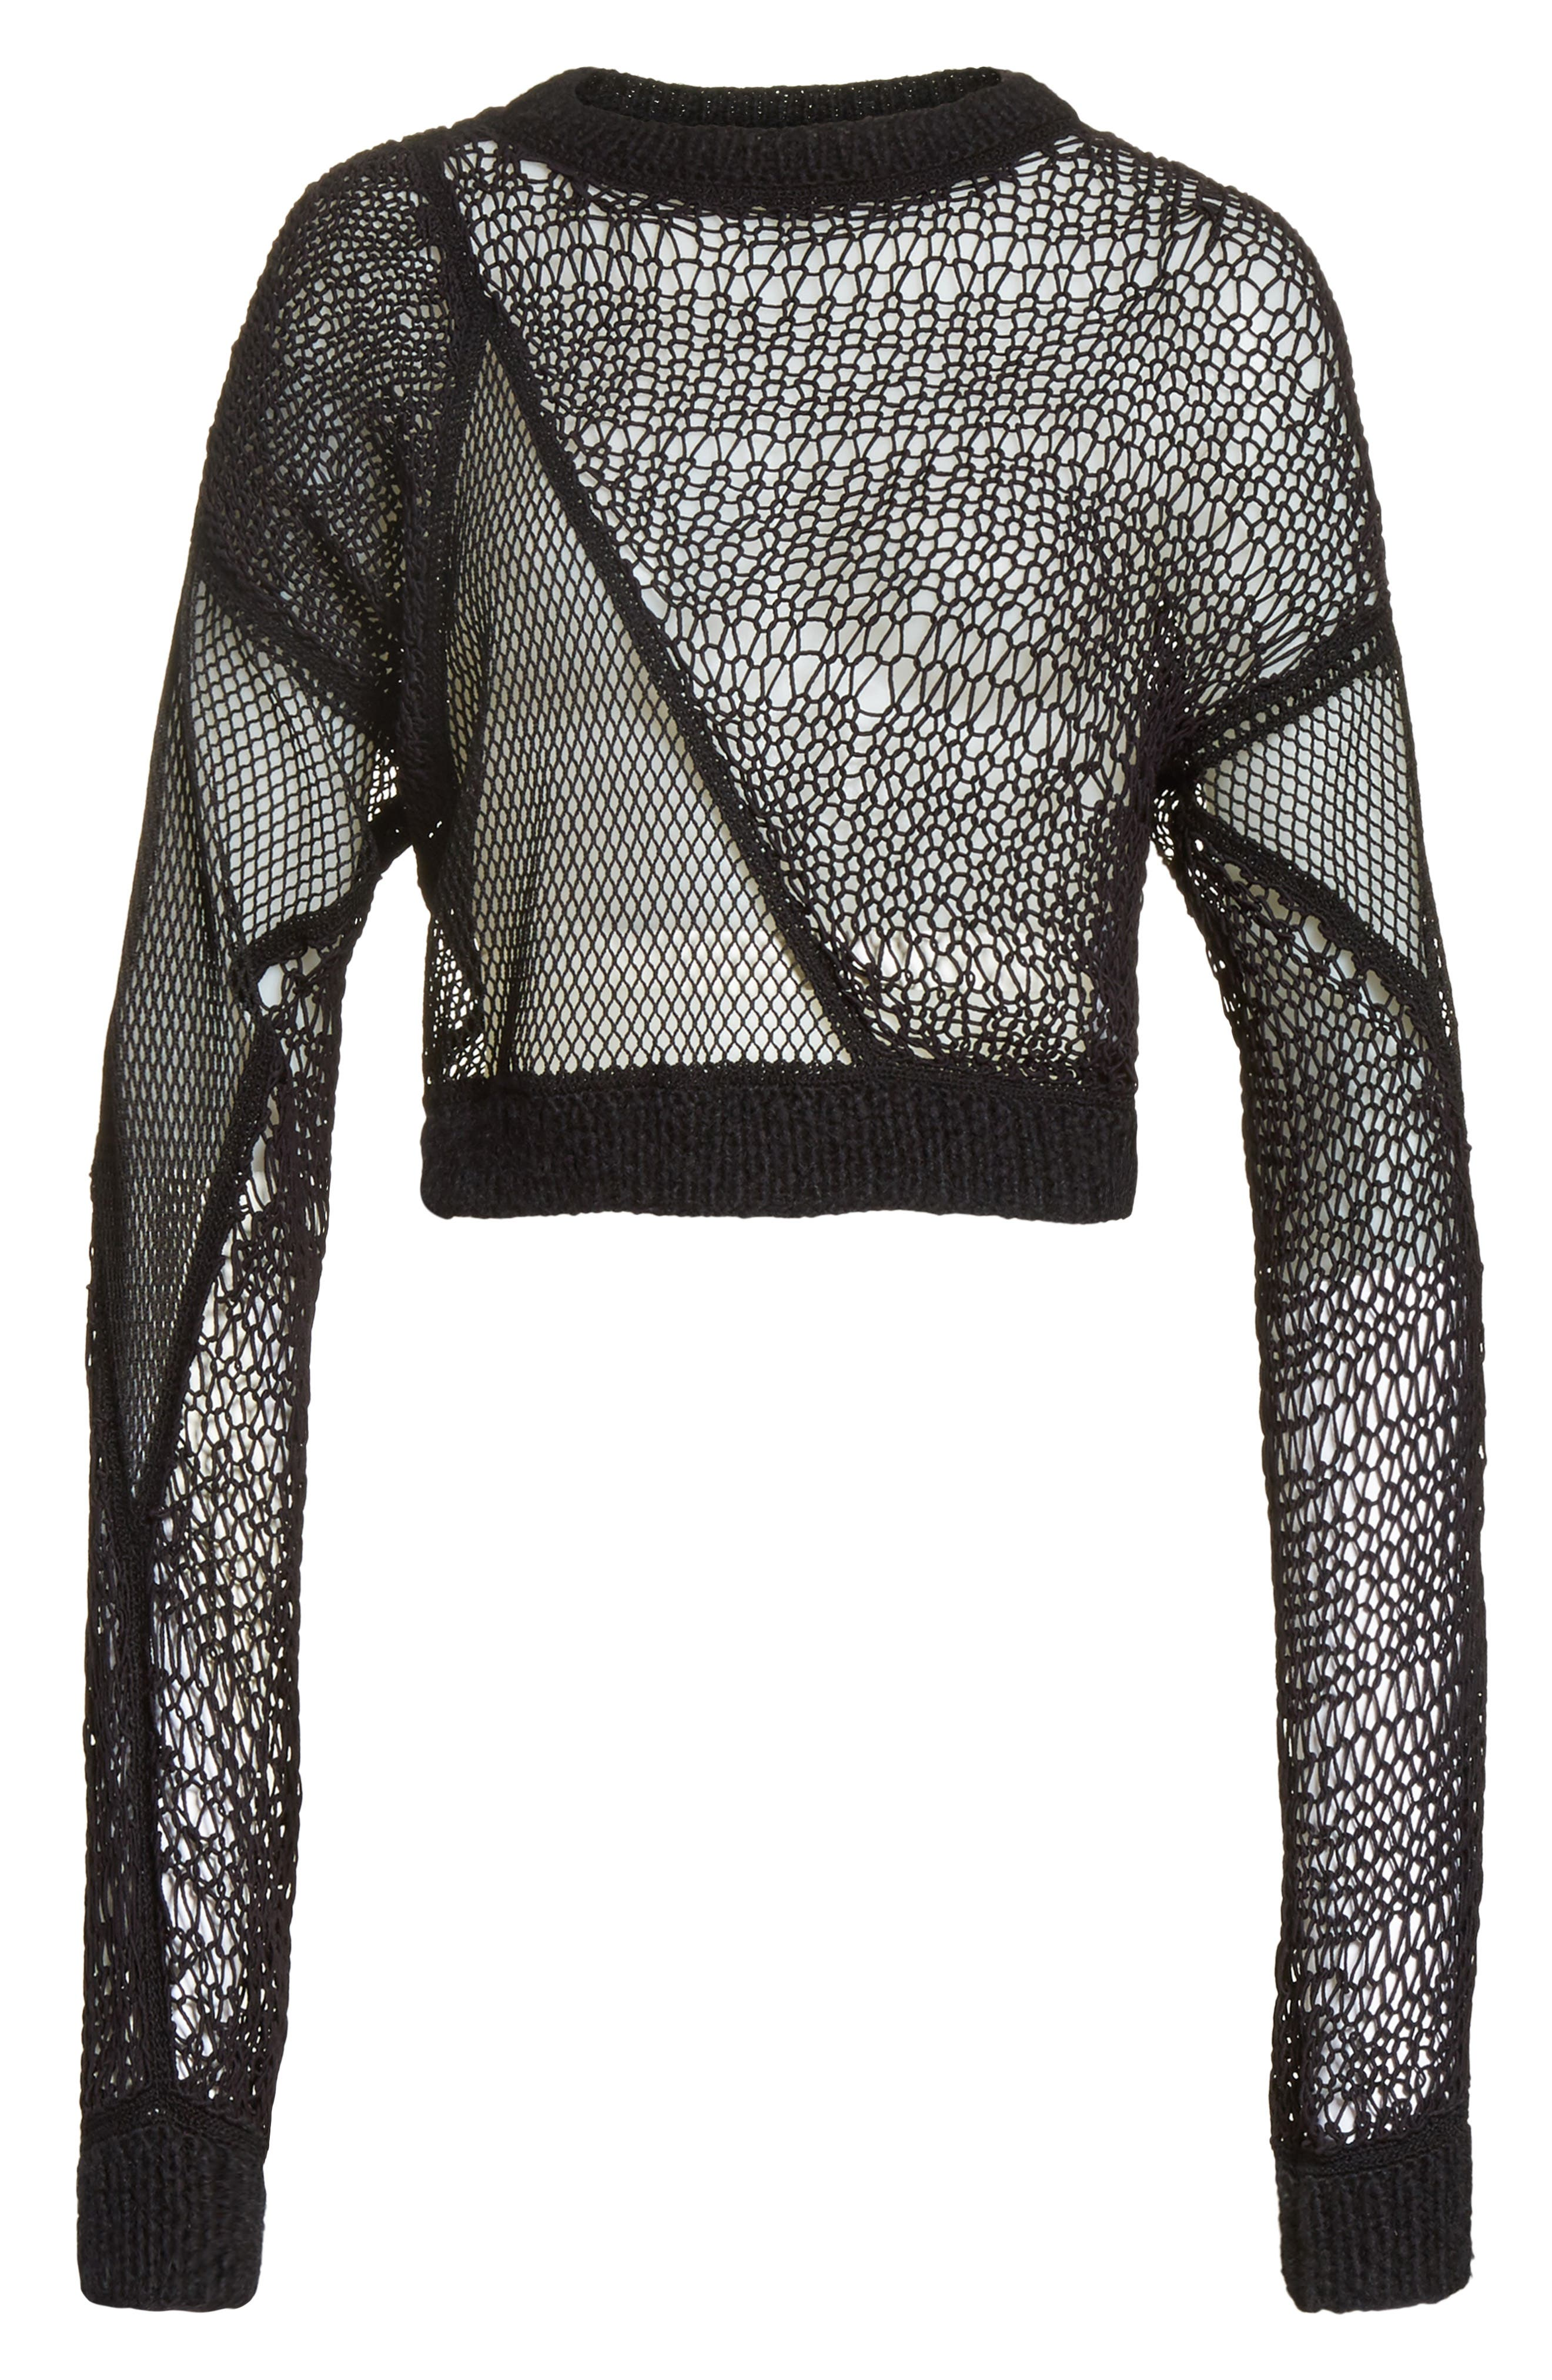 Siouxie Crew Fishnet Patchwork Sweater,                             Alternate thumbnail 6, color,                             001